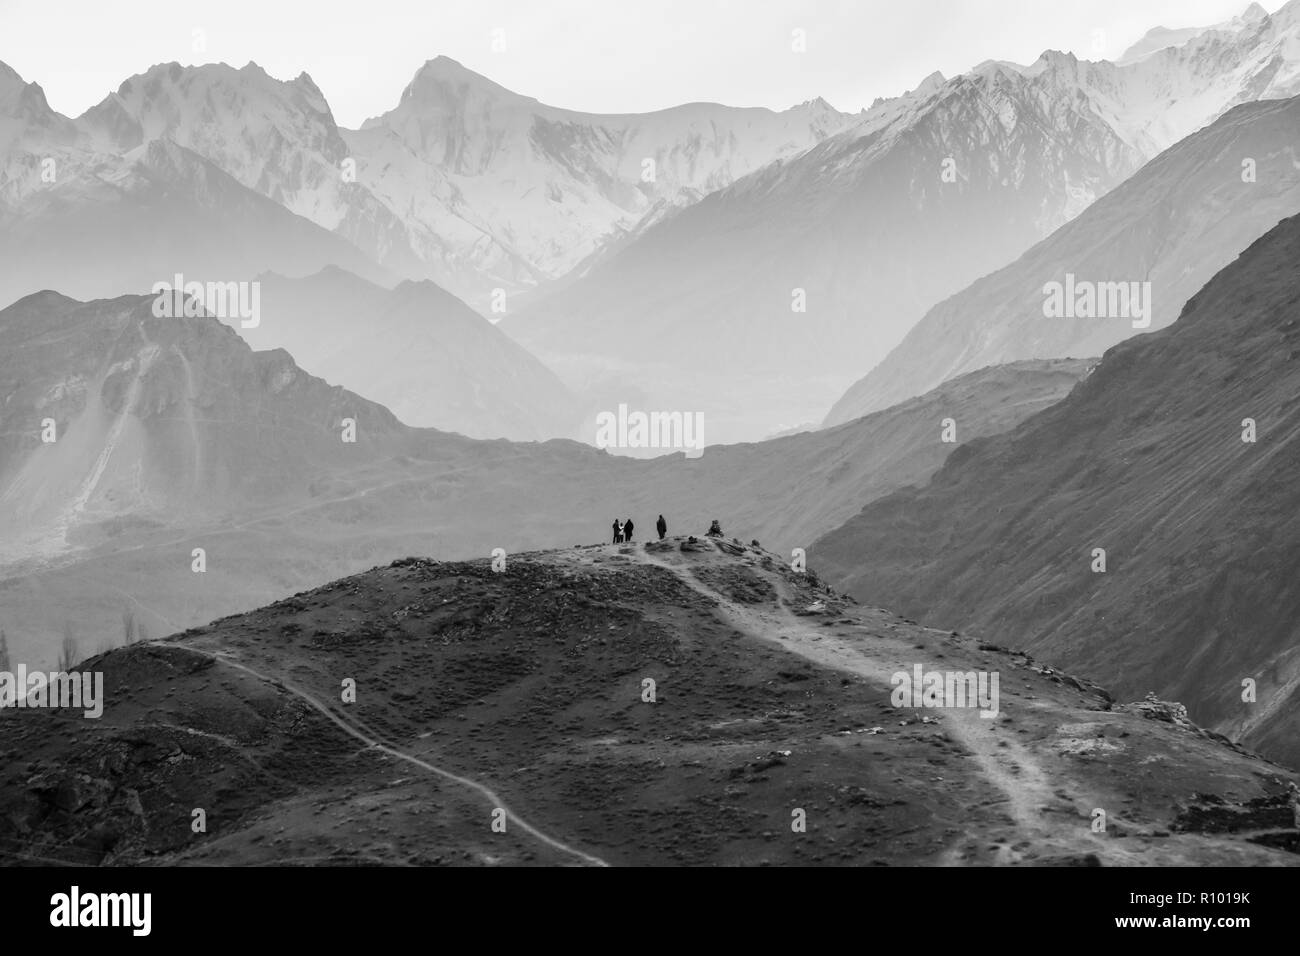 People standing on a hill waiting for rising sun at Hunza valley. Pakistan. - Stock Image